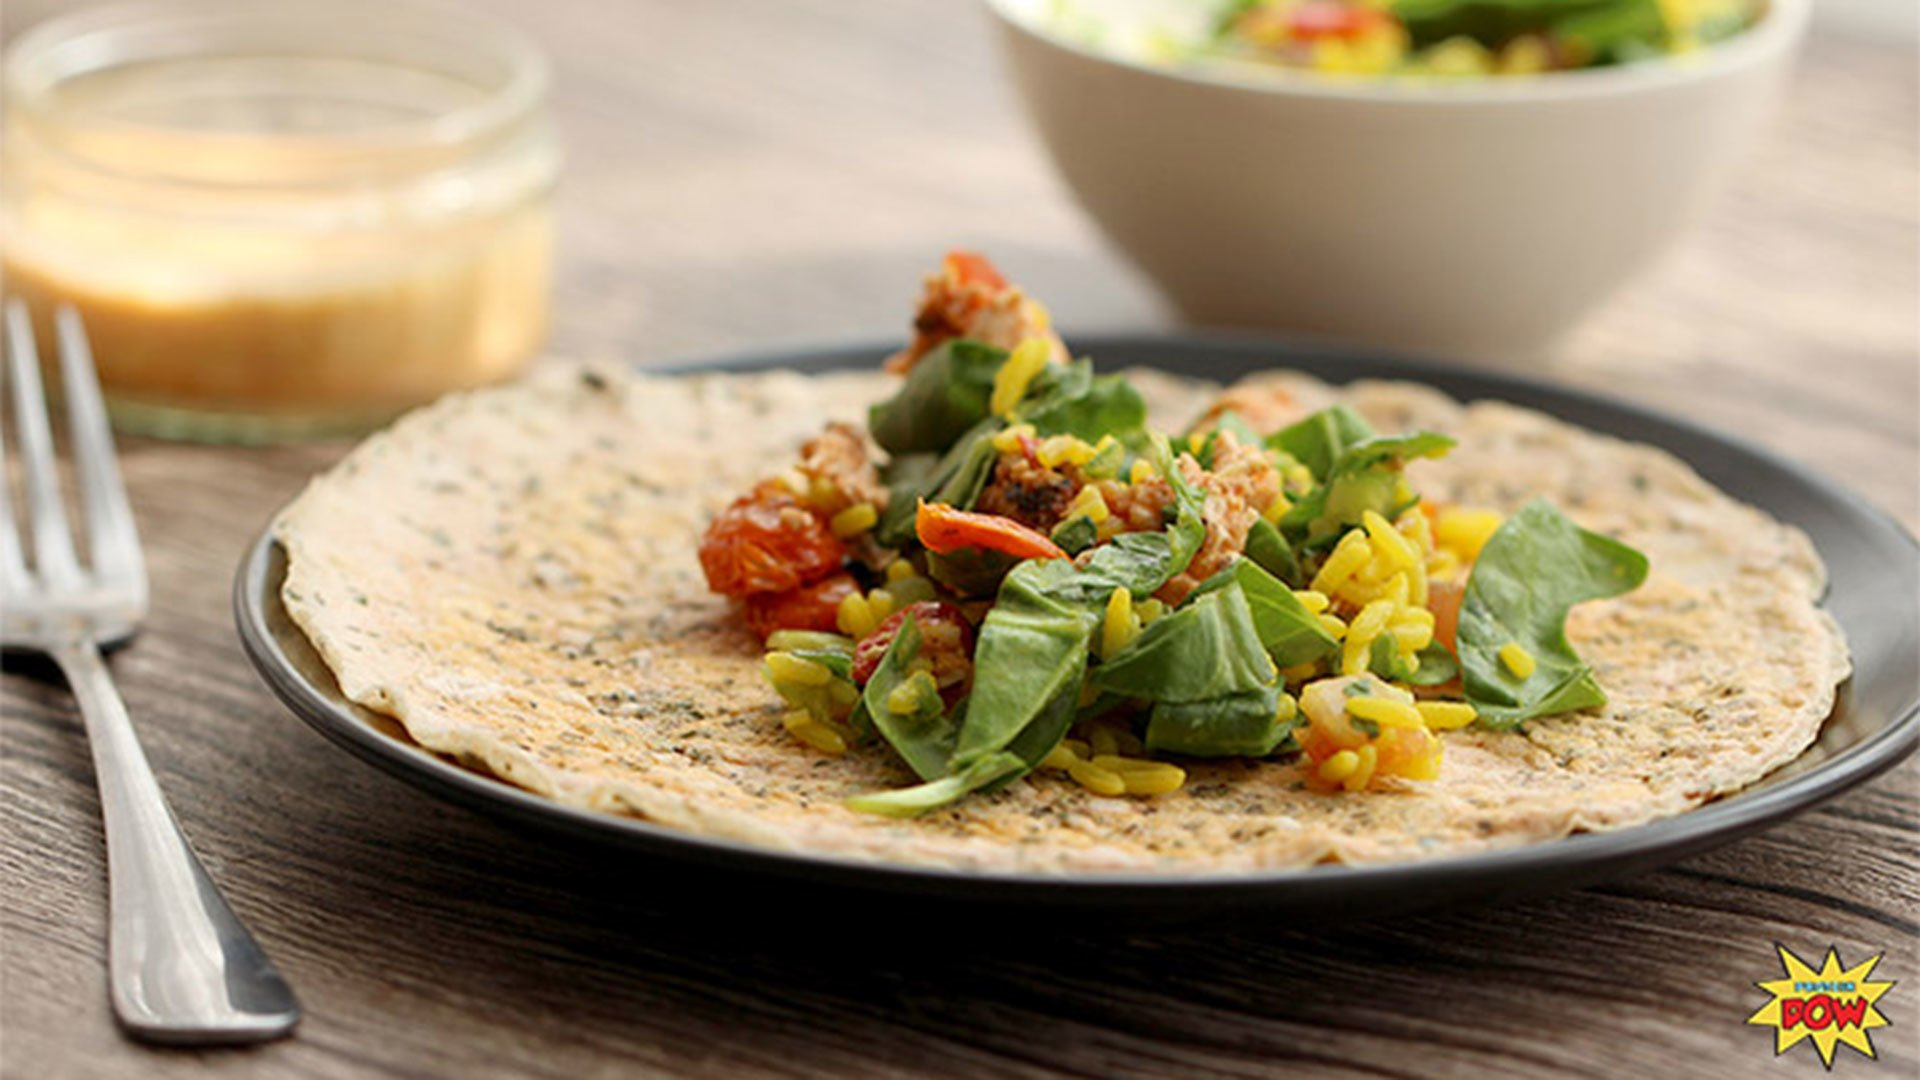 Gluten-Free Savory Whey Protein Crepes